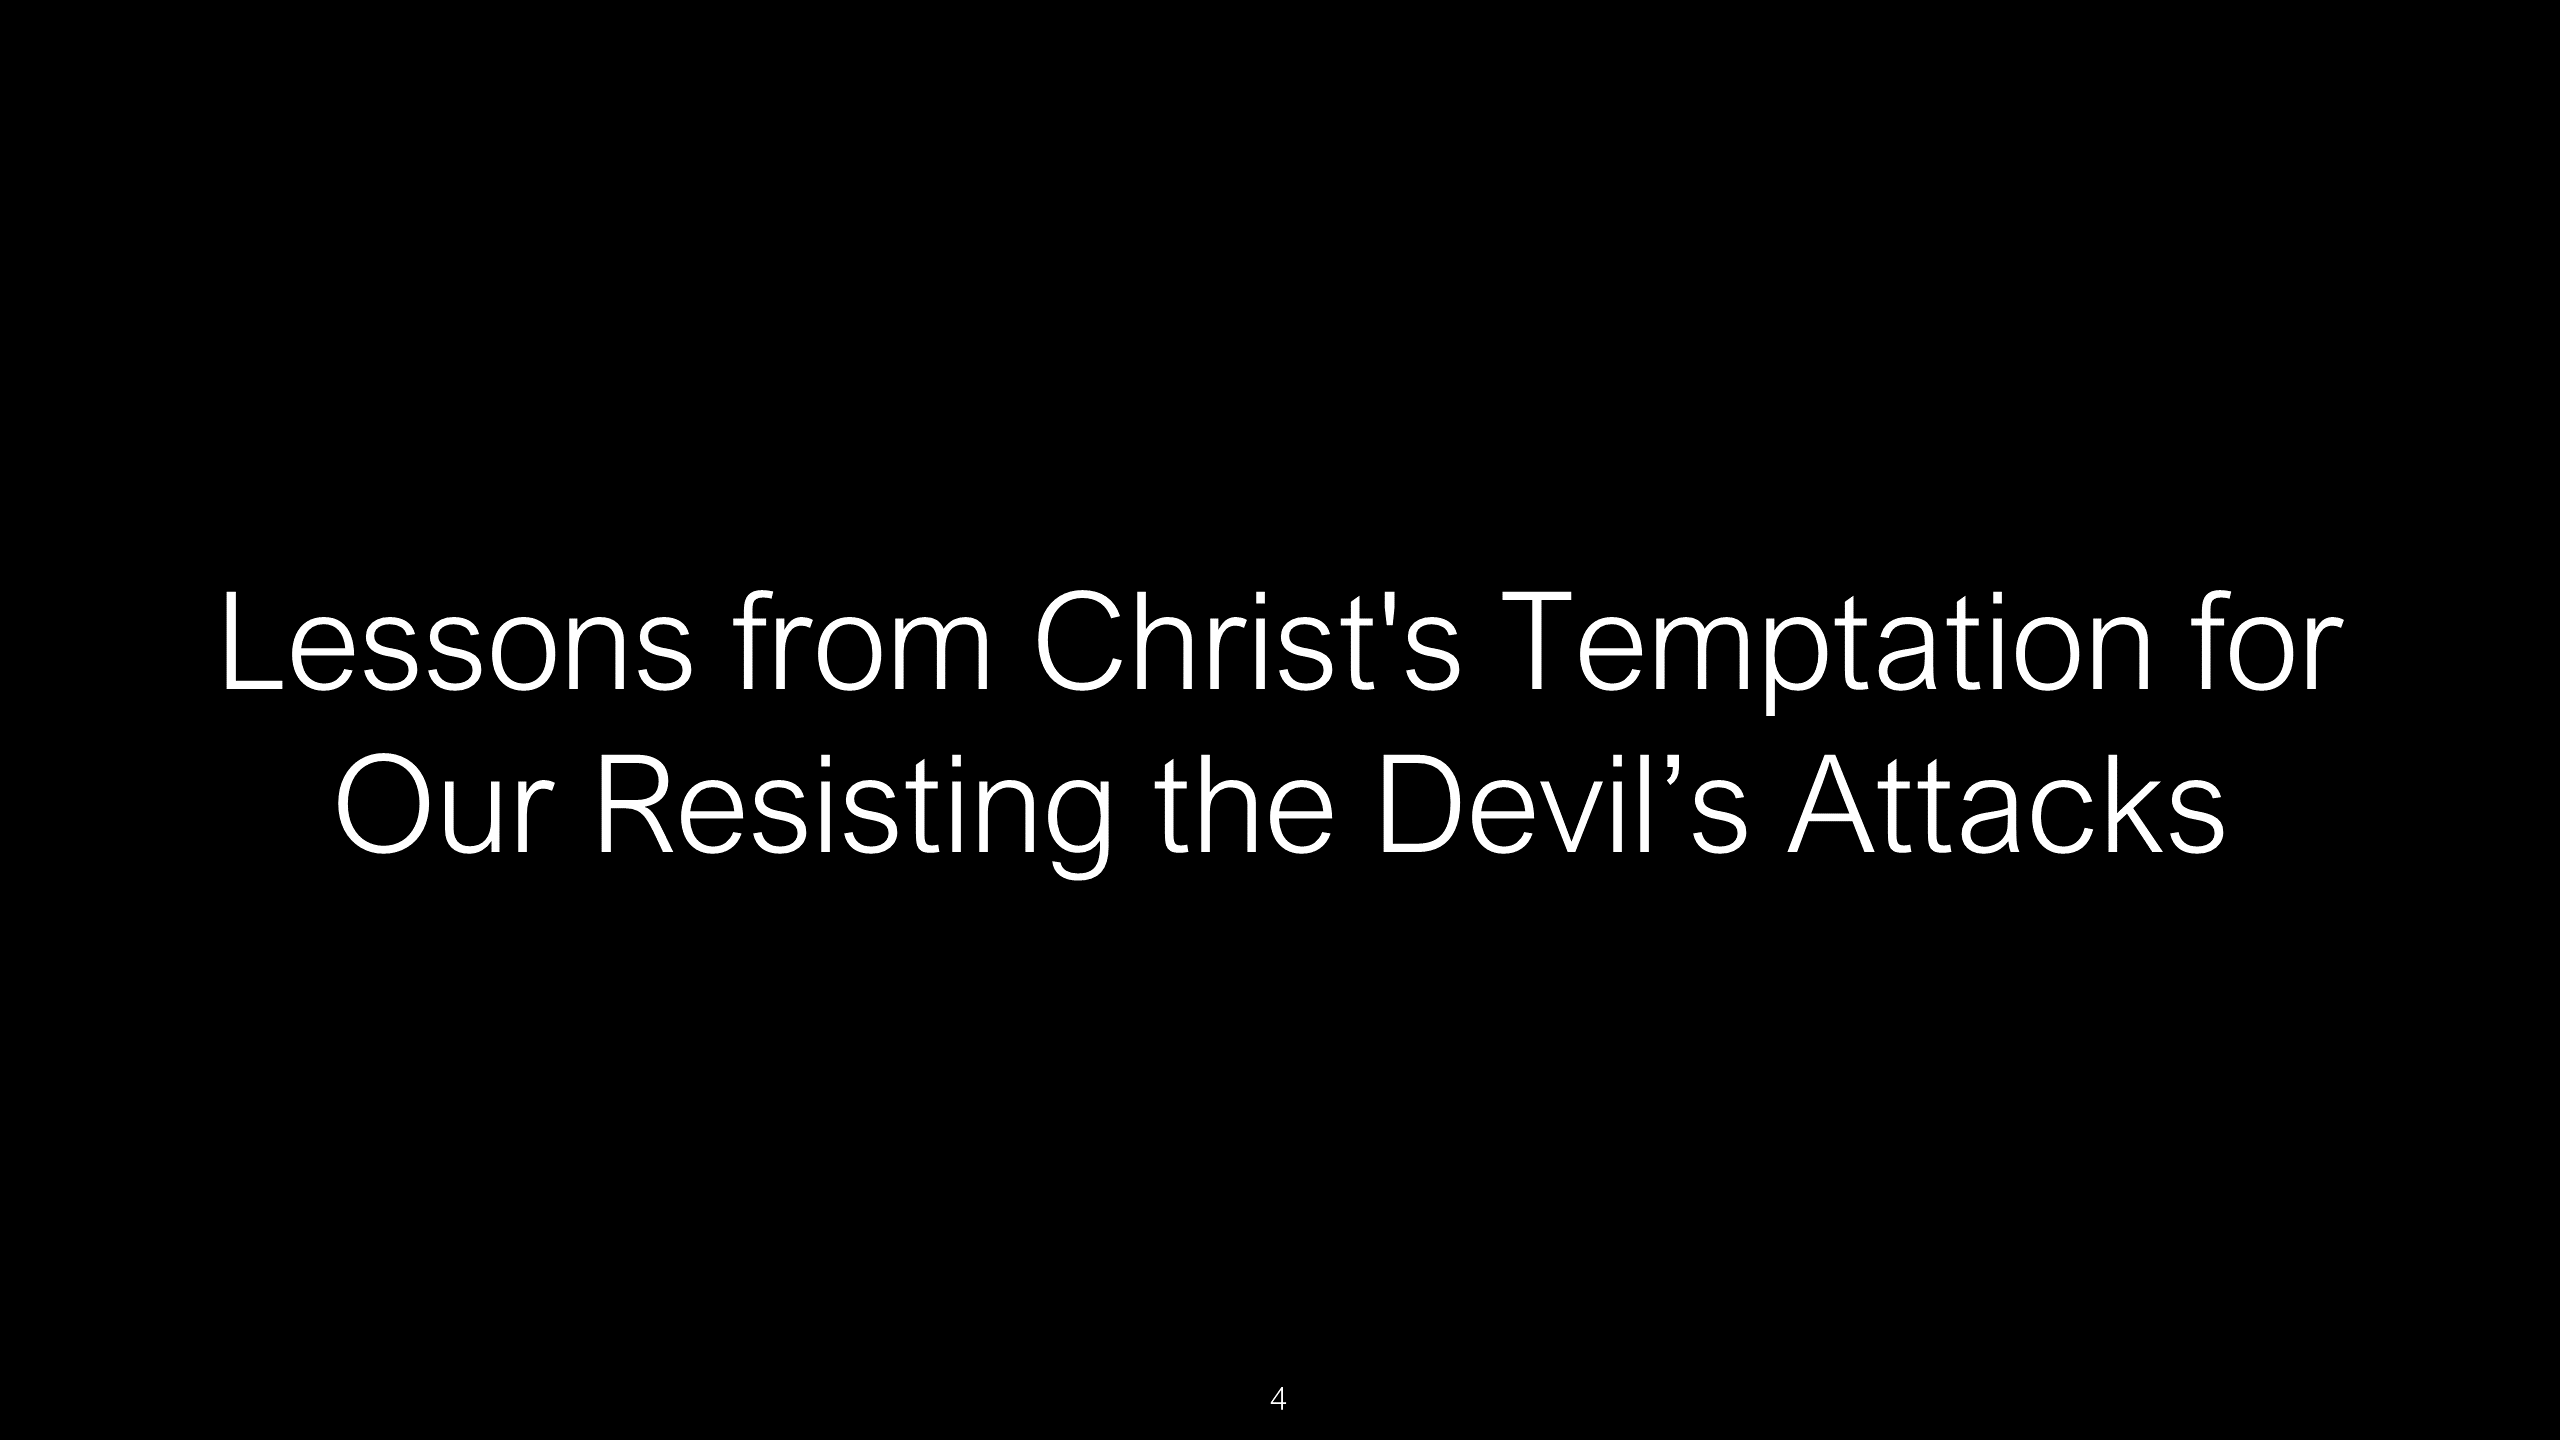 SWS-09 - Lessons from Christ's Temptation for Our Resisting the Devil's Attacks (4)